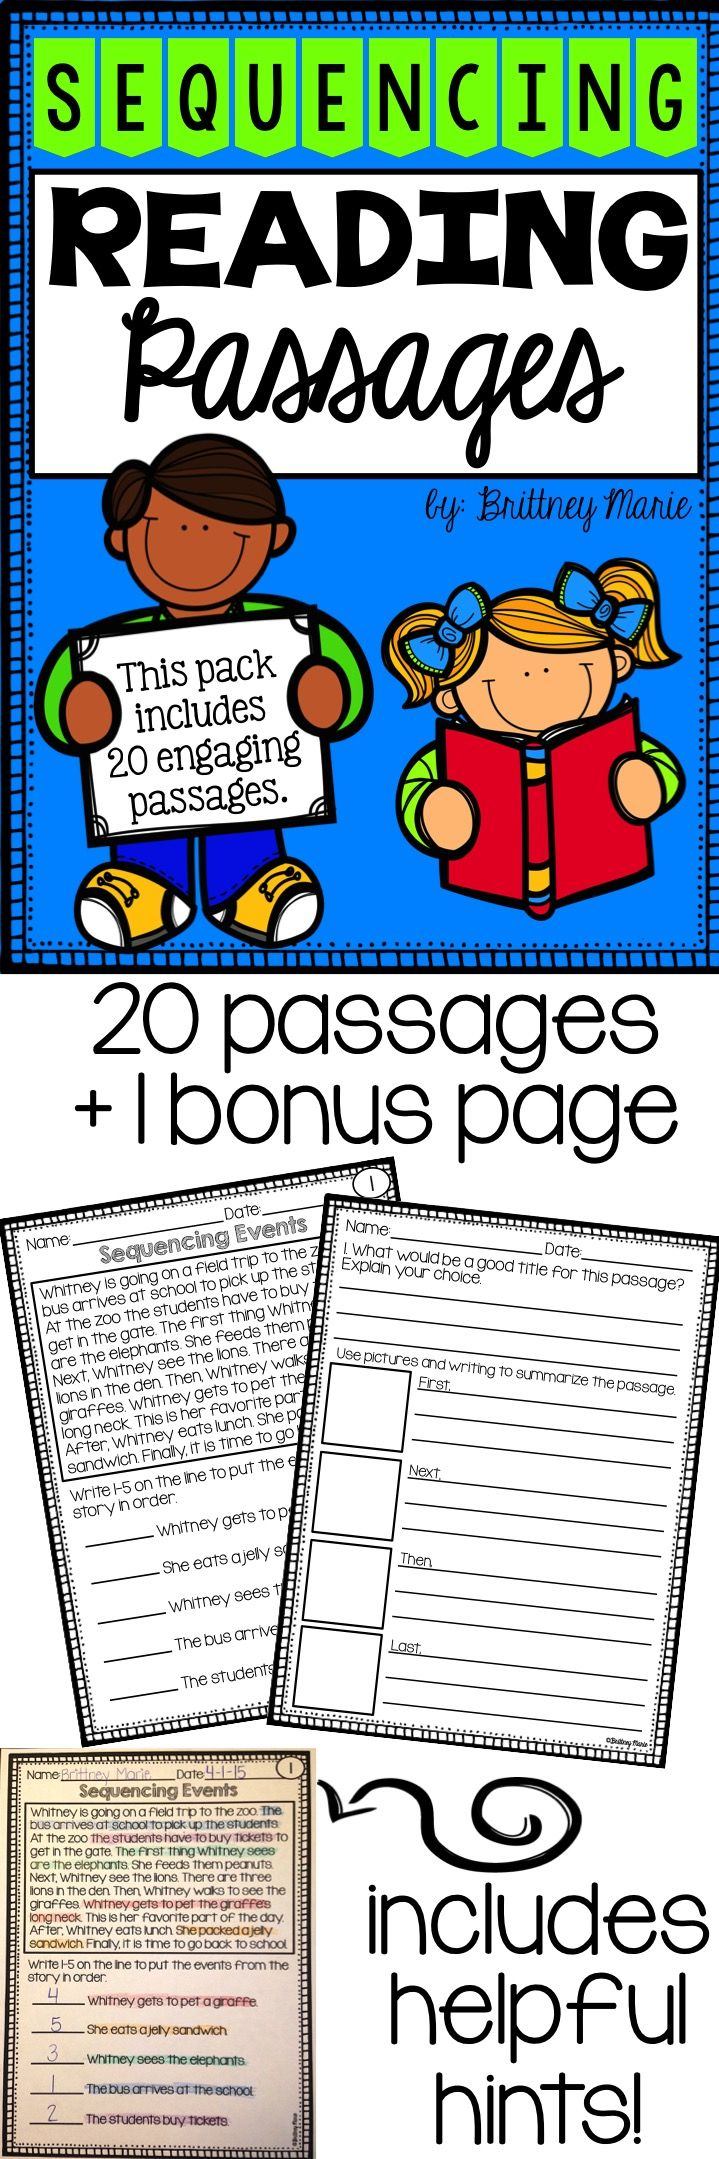 Printables Practice Most Likely And Least Events 4th Grade 1000 ideas about sequencing events on pinterest graphic a fun and engaging way to practice in reading passage includes 20 passages more